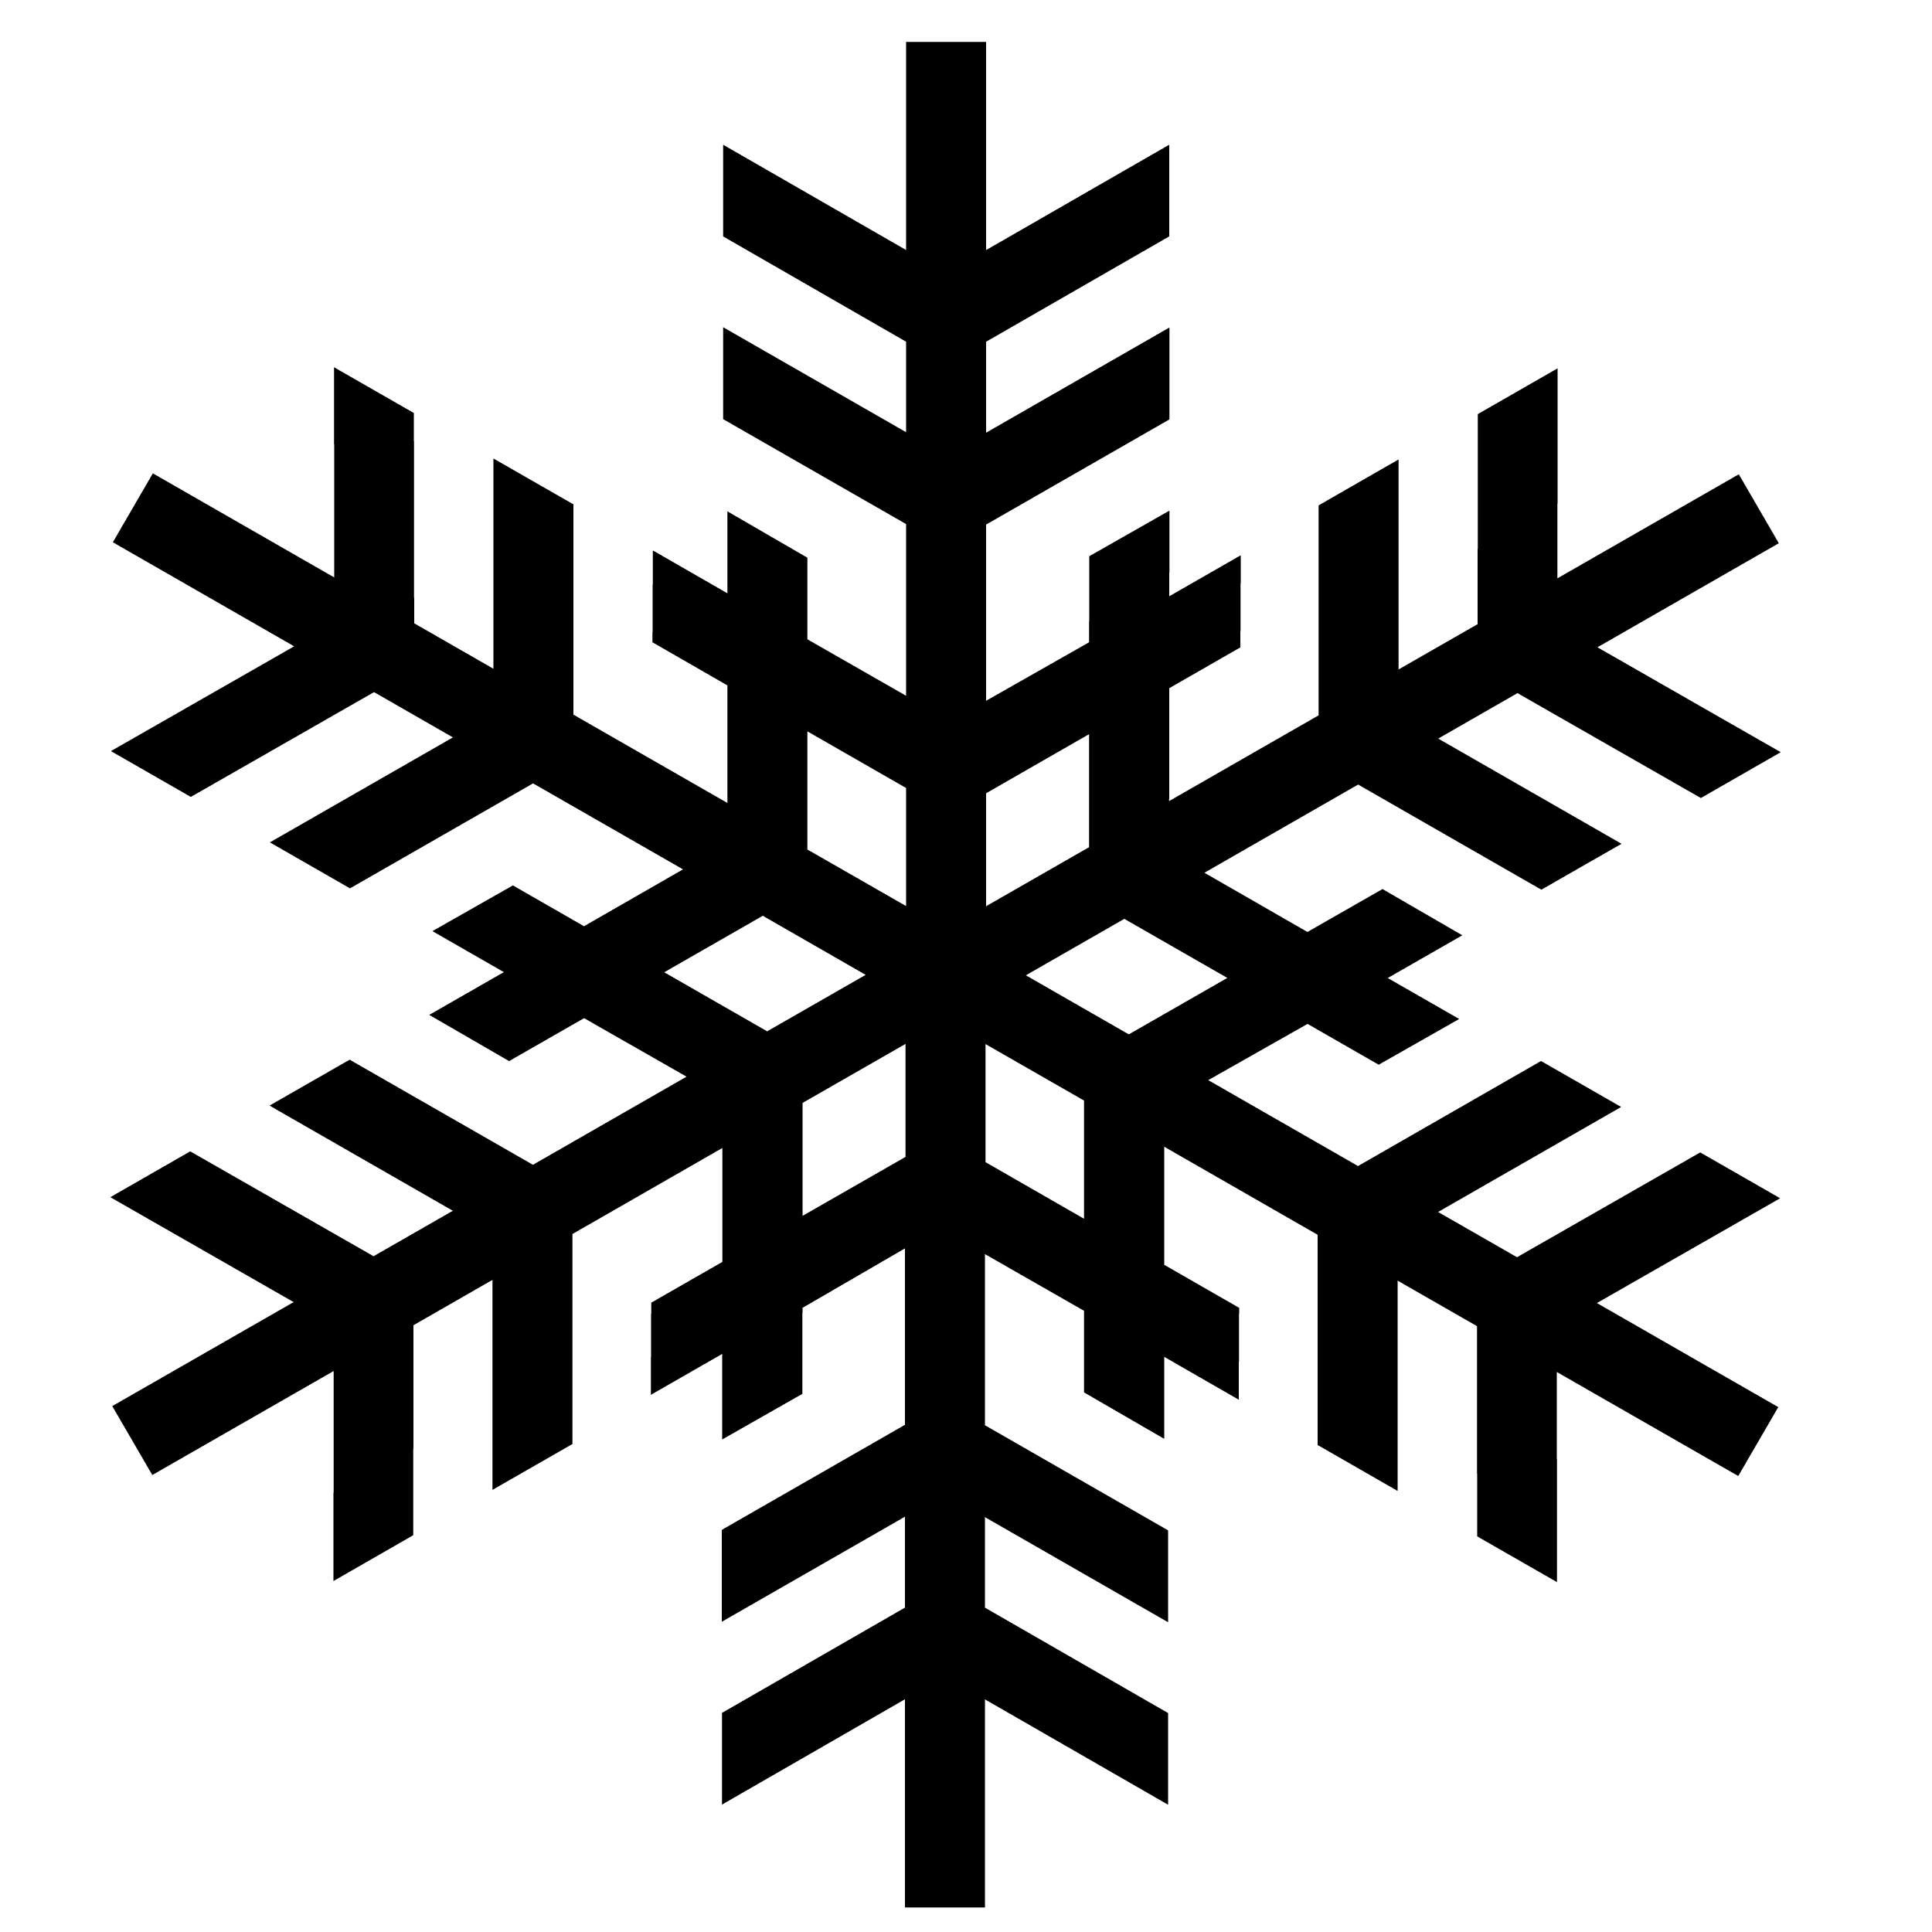 Snowflake profile pics clipart png freeuse download 52 Snowflakes Vectors | Clipart Panda - Free Clipart Images png freeuse download